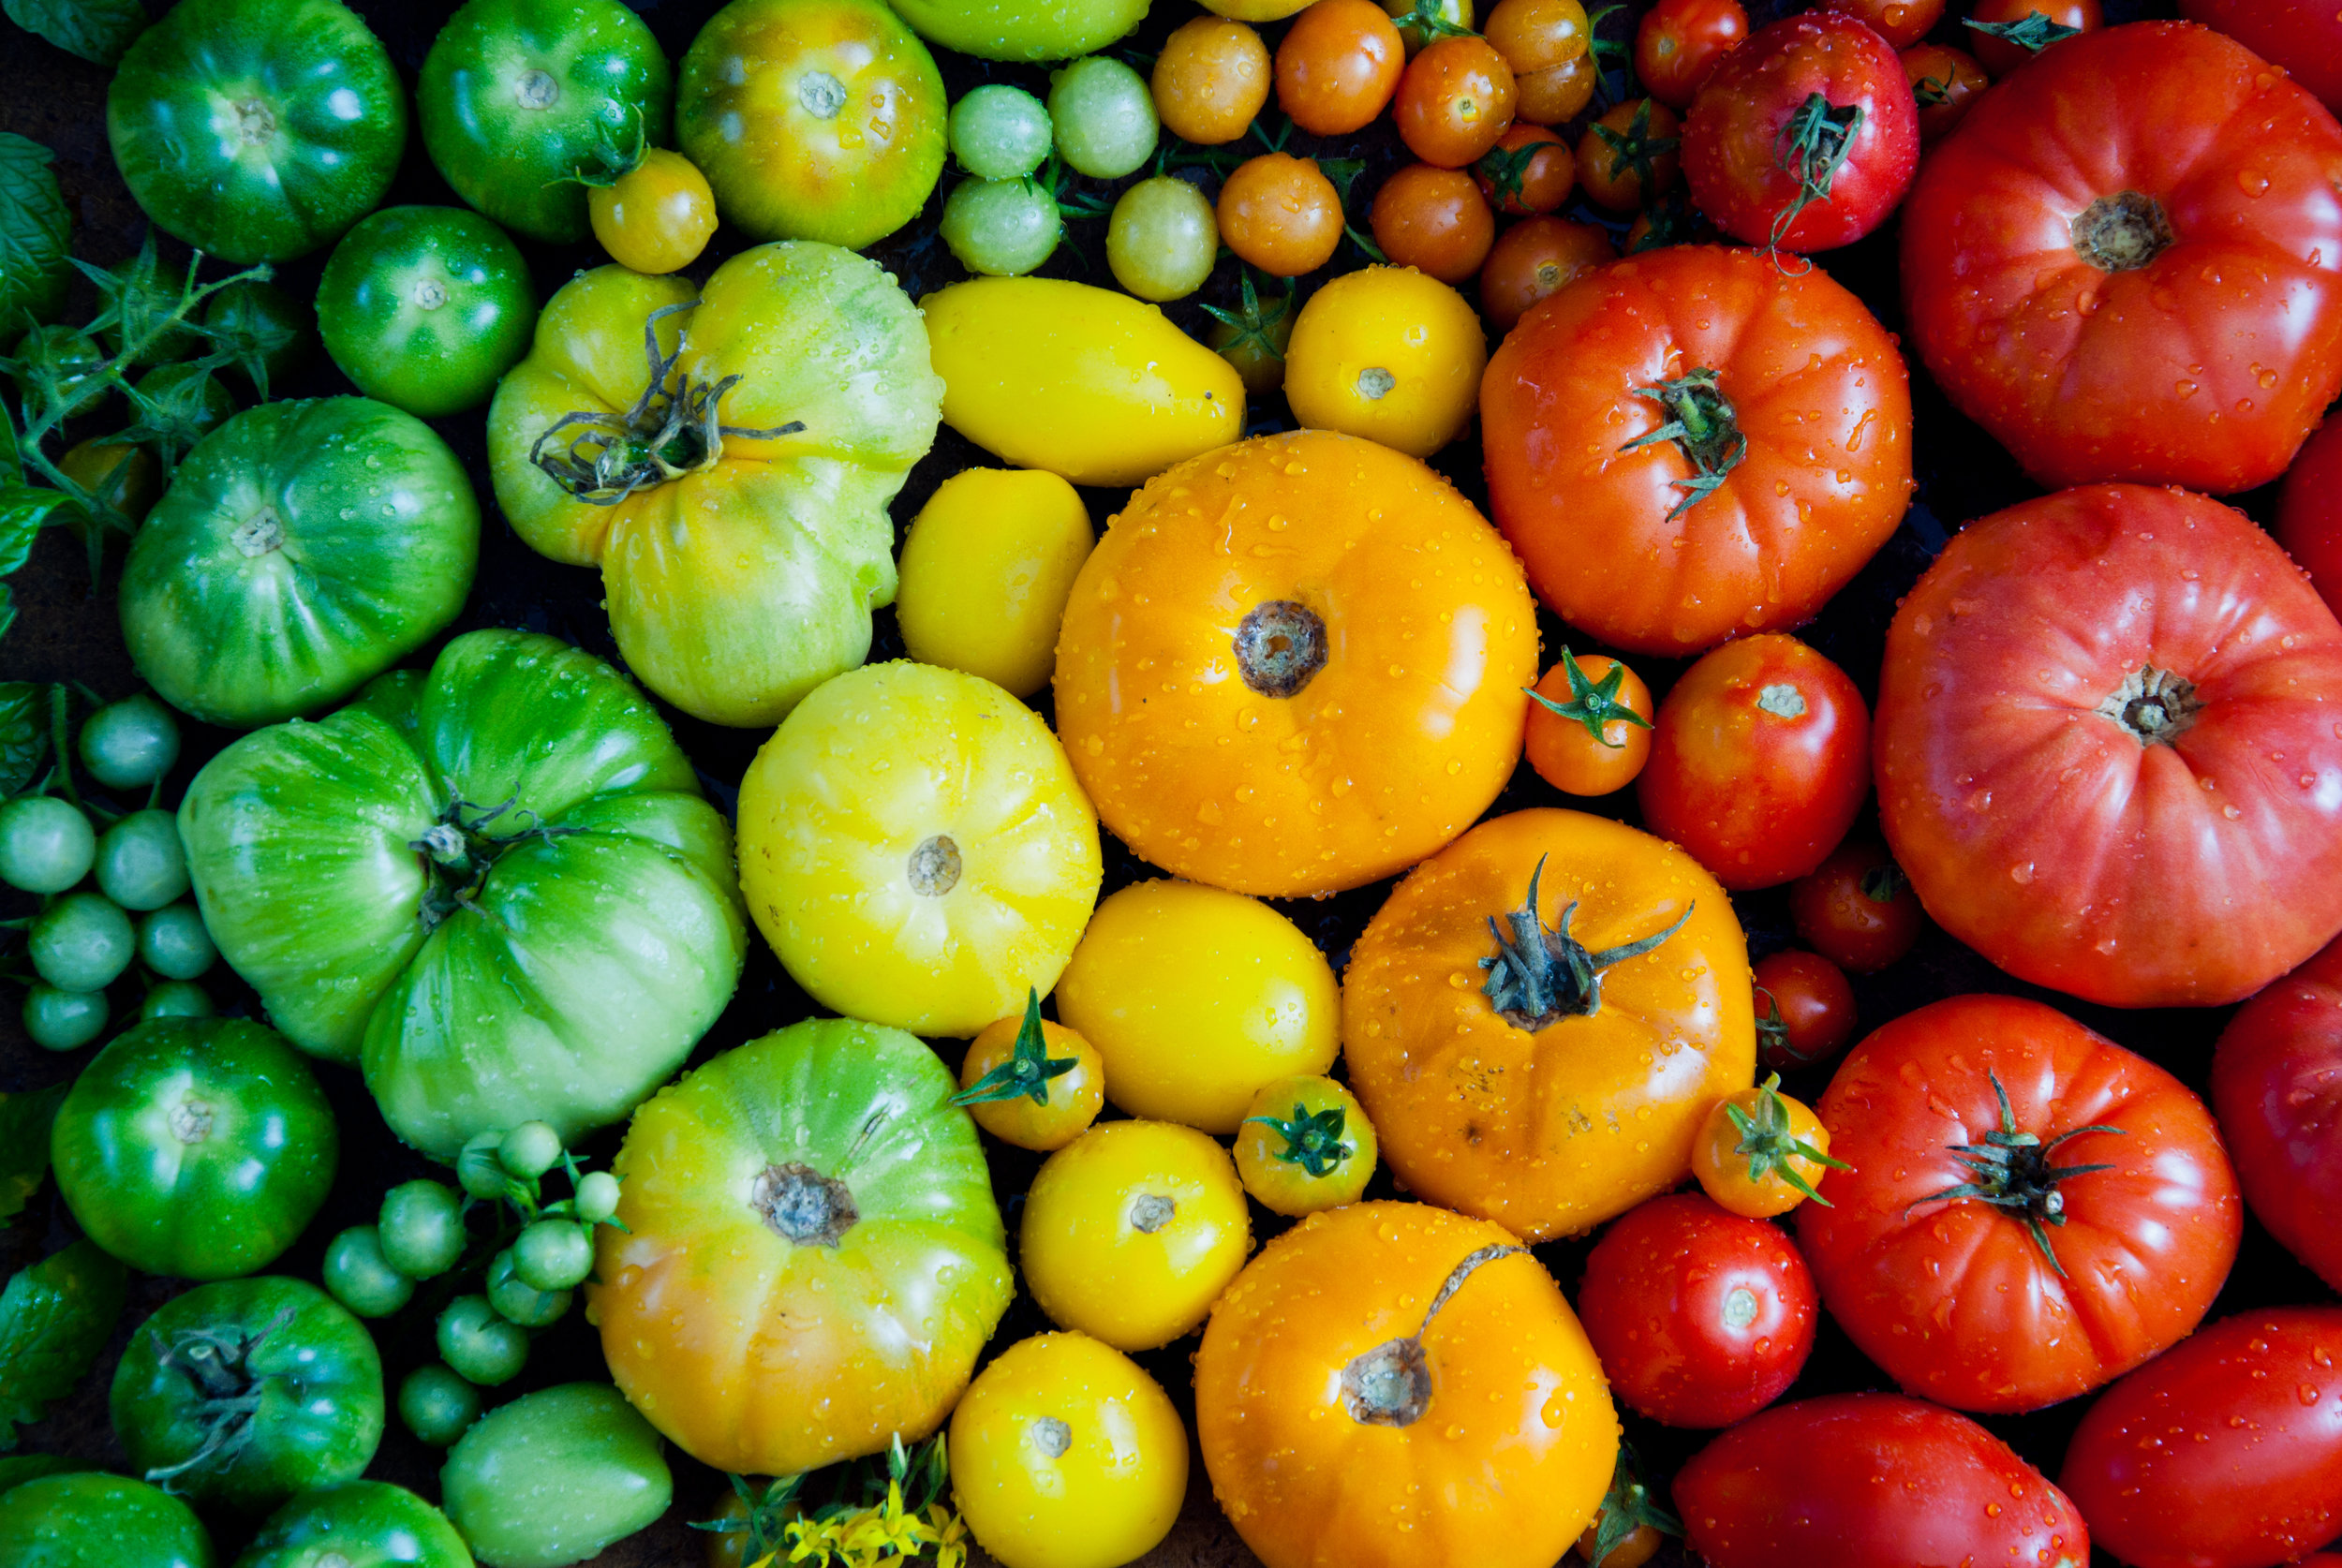 Heirloom tomatoes offer a diversity of flavor and color.